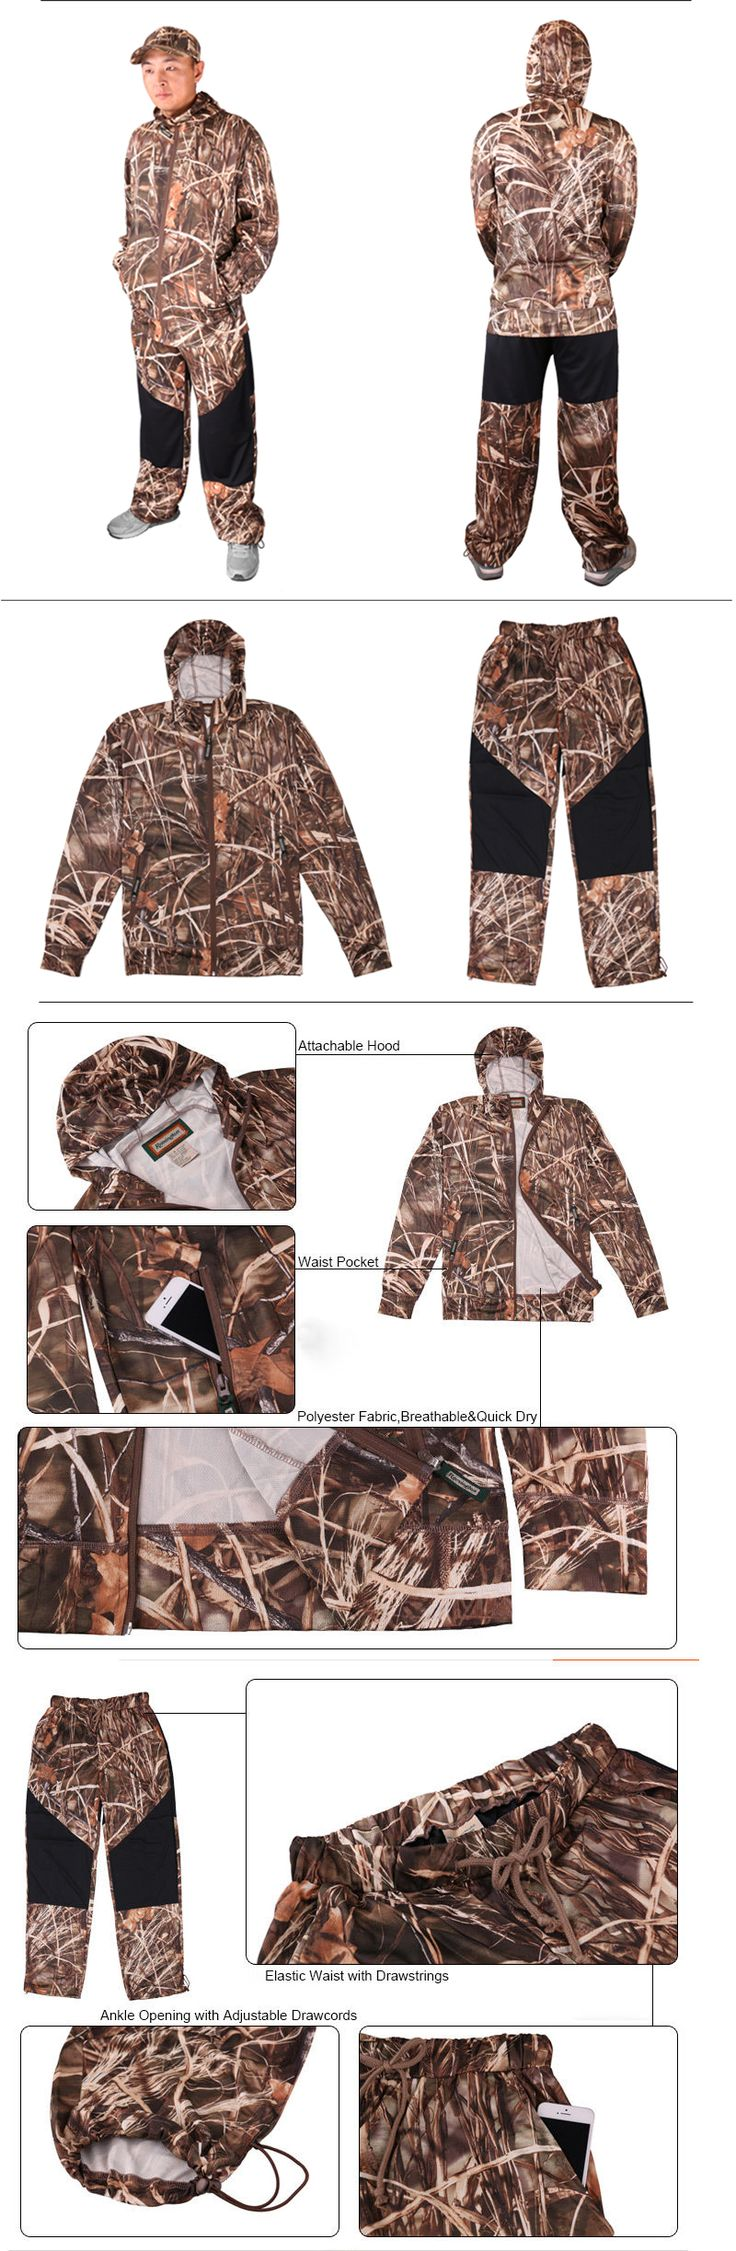 Jacket and Pants Sets 179981: Mens Camo Fishing Clothing Jacketandpant Sets Uv Protection Breathable Plus Size -> BUY IT NOW ONLY: $82 on eBay!